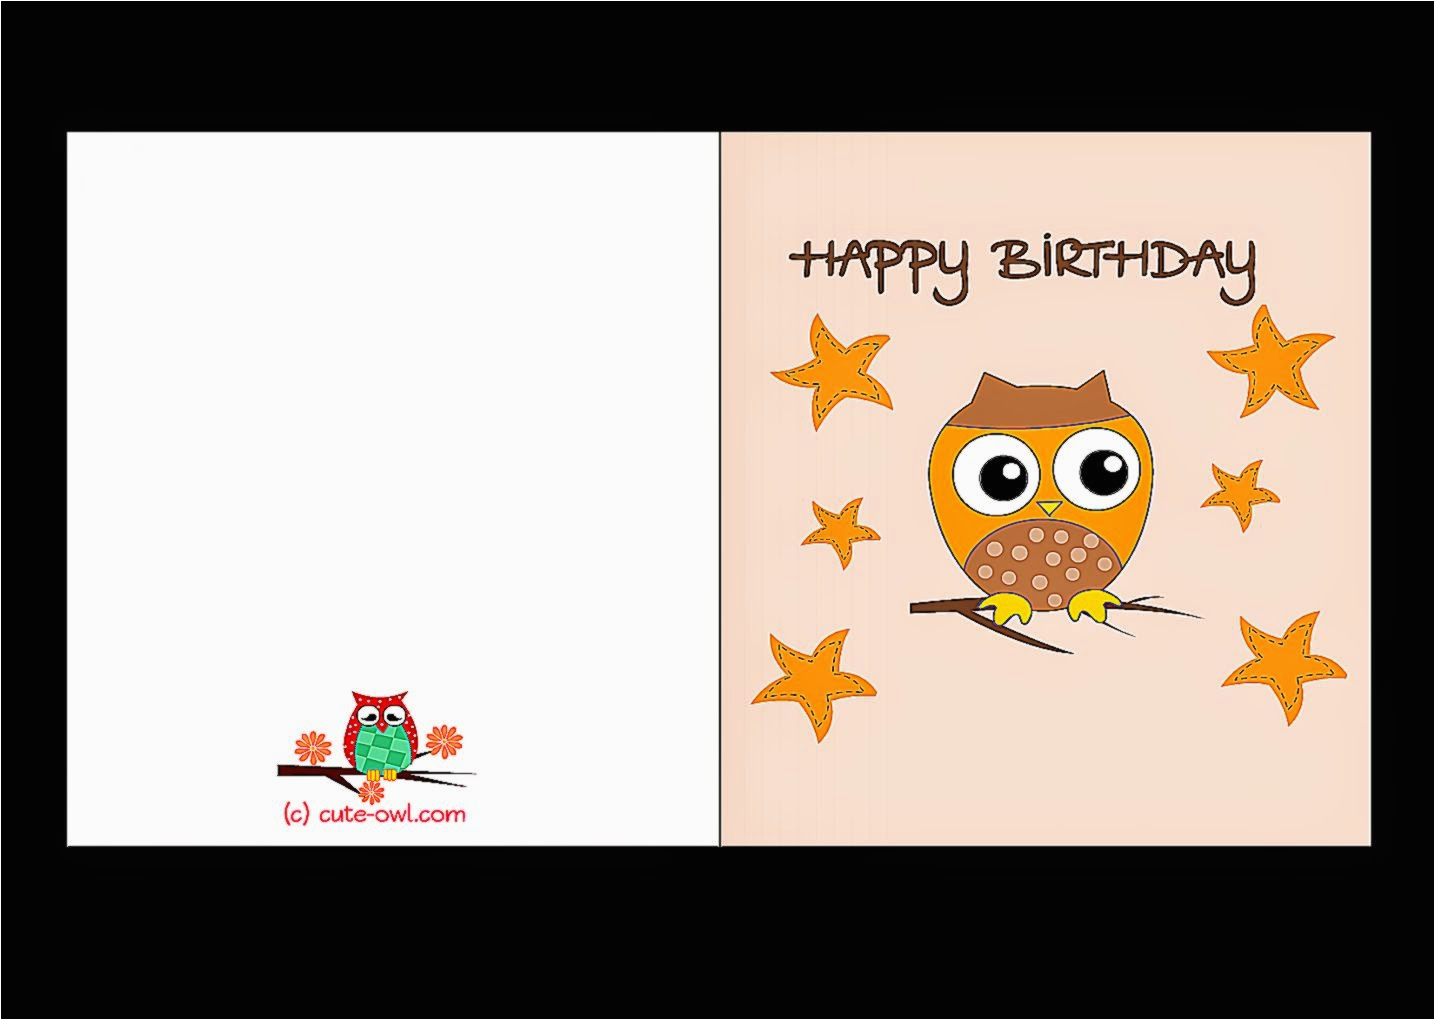 Print Out A Birthday Card Print Out Birthday Cards Free Coloring Sheet